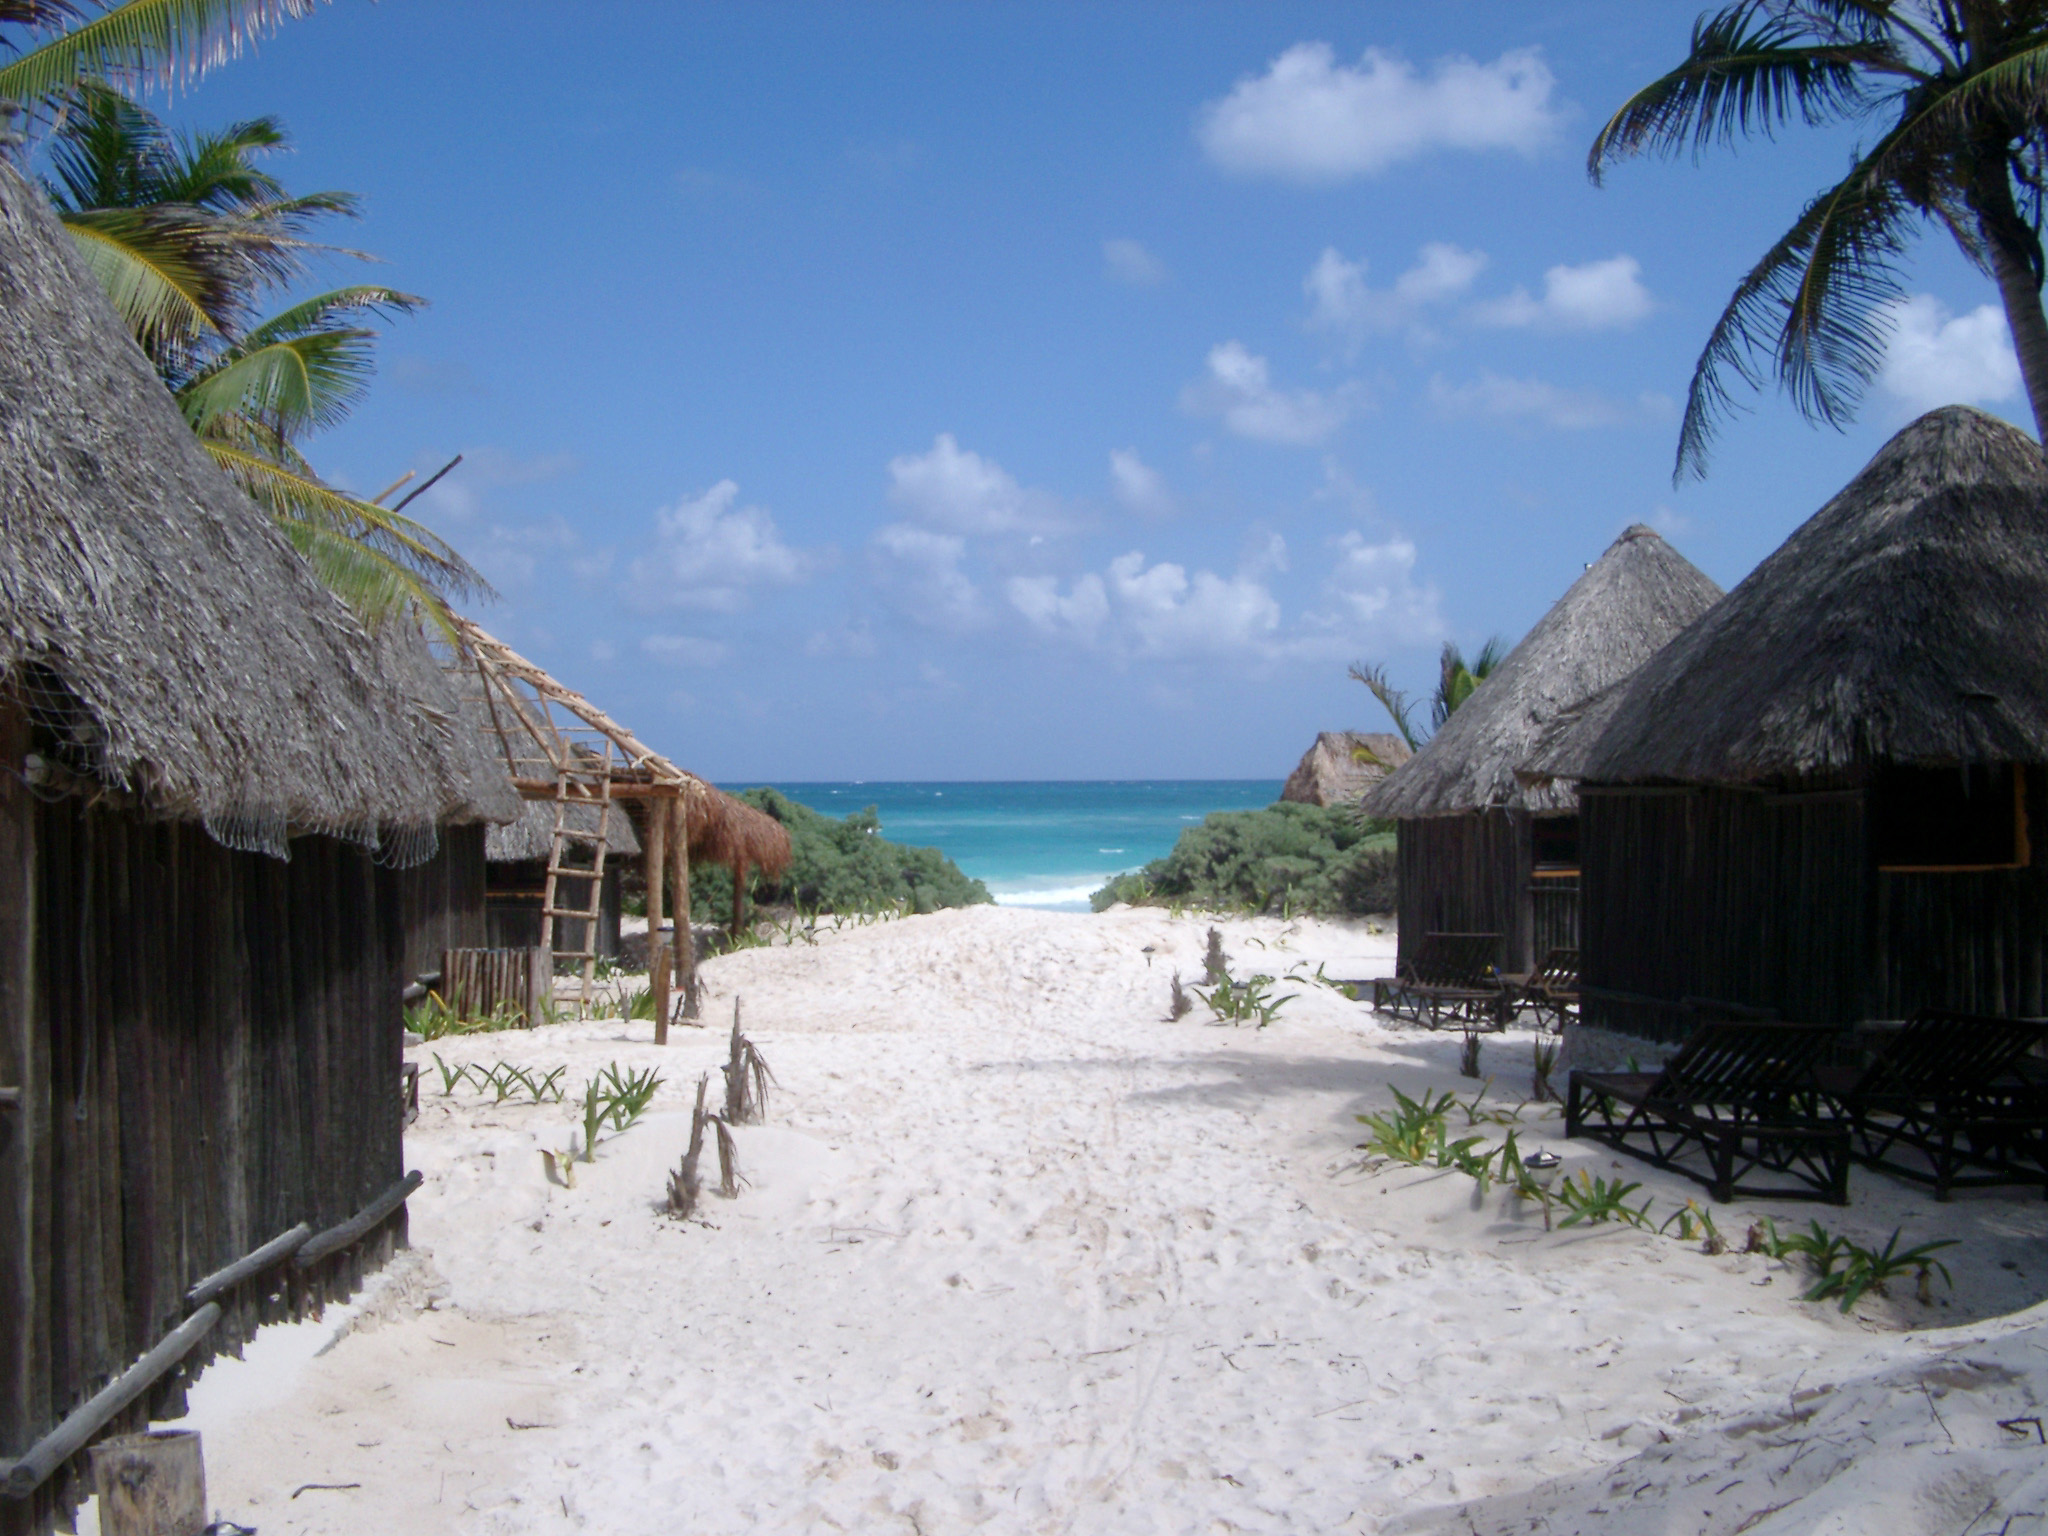 Picturesque view of traditional quaint thatched huts in a Mexican resort with a path across golden beach sand leading past tropical palm trees to the blue ocean